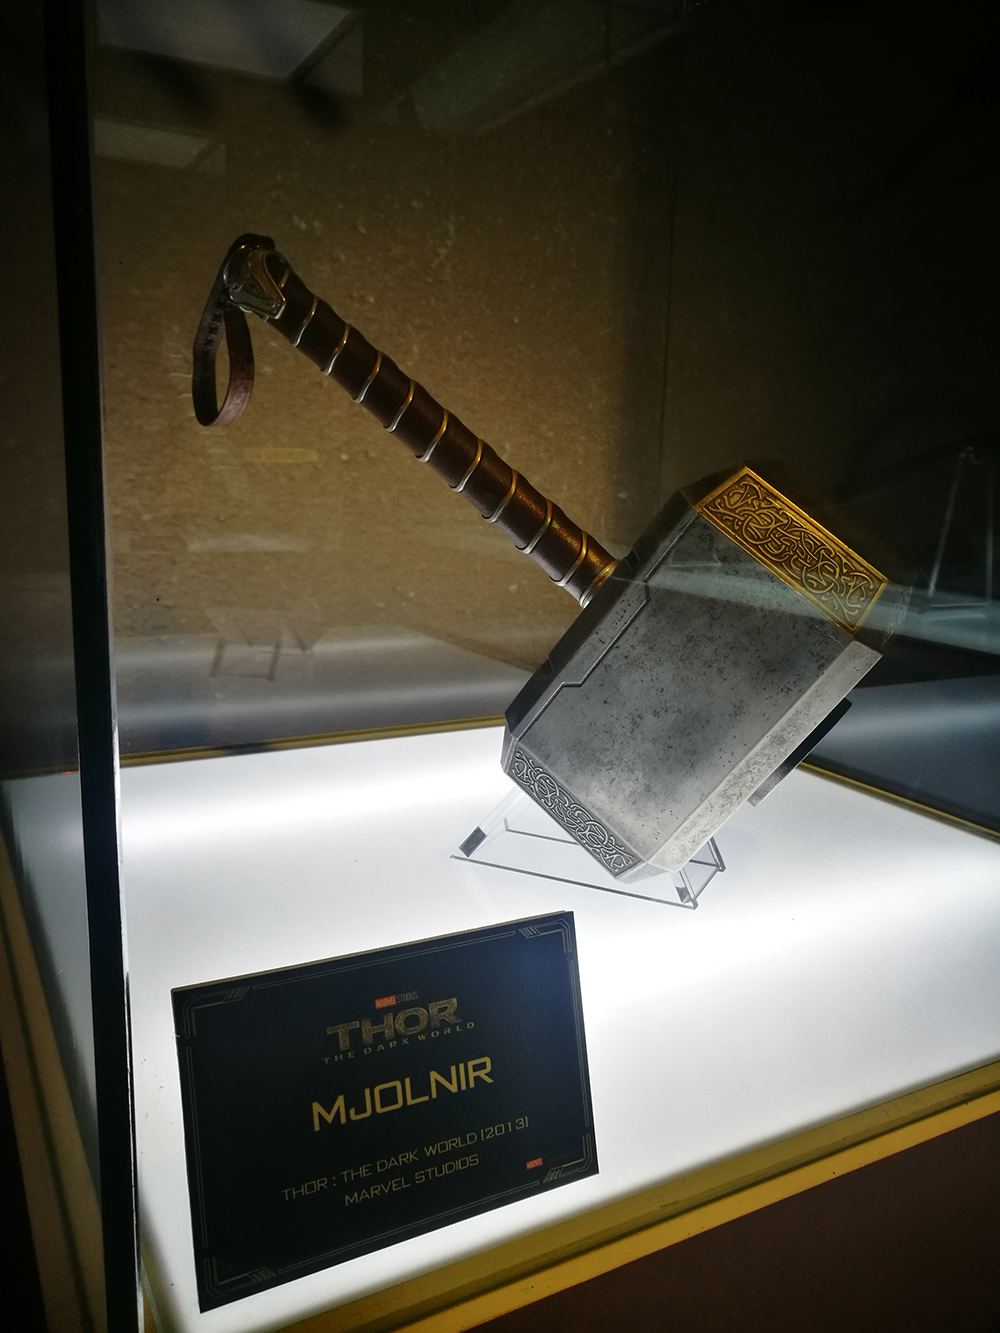 An actual Mjølnir prop from 2013's 'Thor: The Dark World', flown in from London for the exhibit.